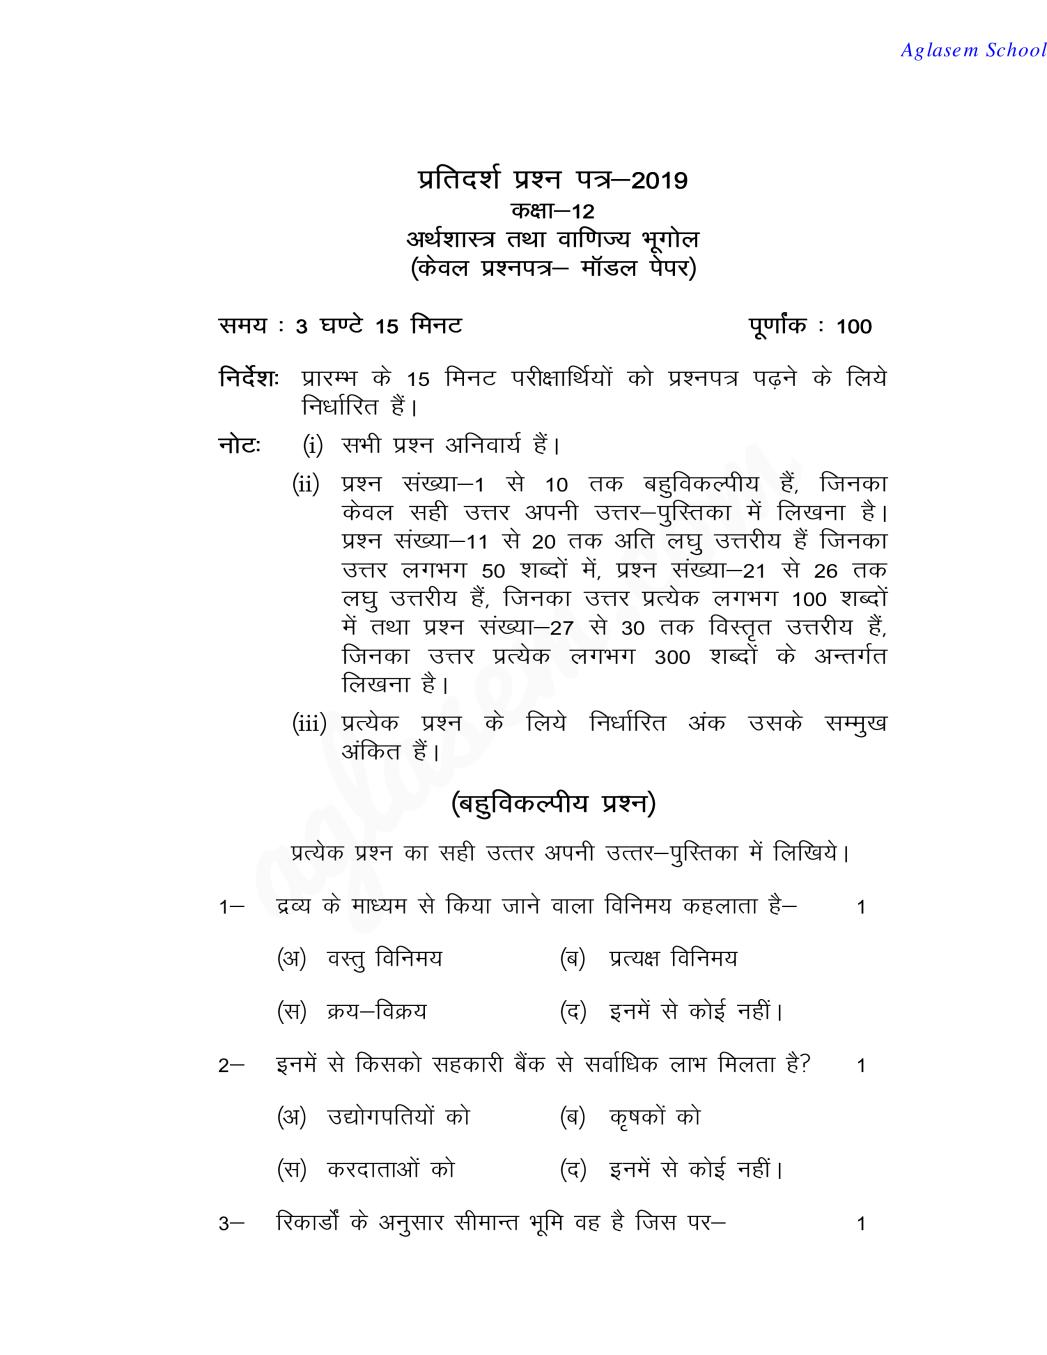 UP Board Model Paper 2020 Class 12th – Economics & Commercial Geography